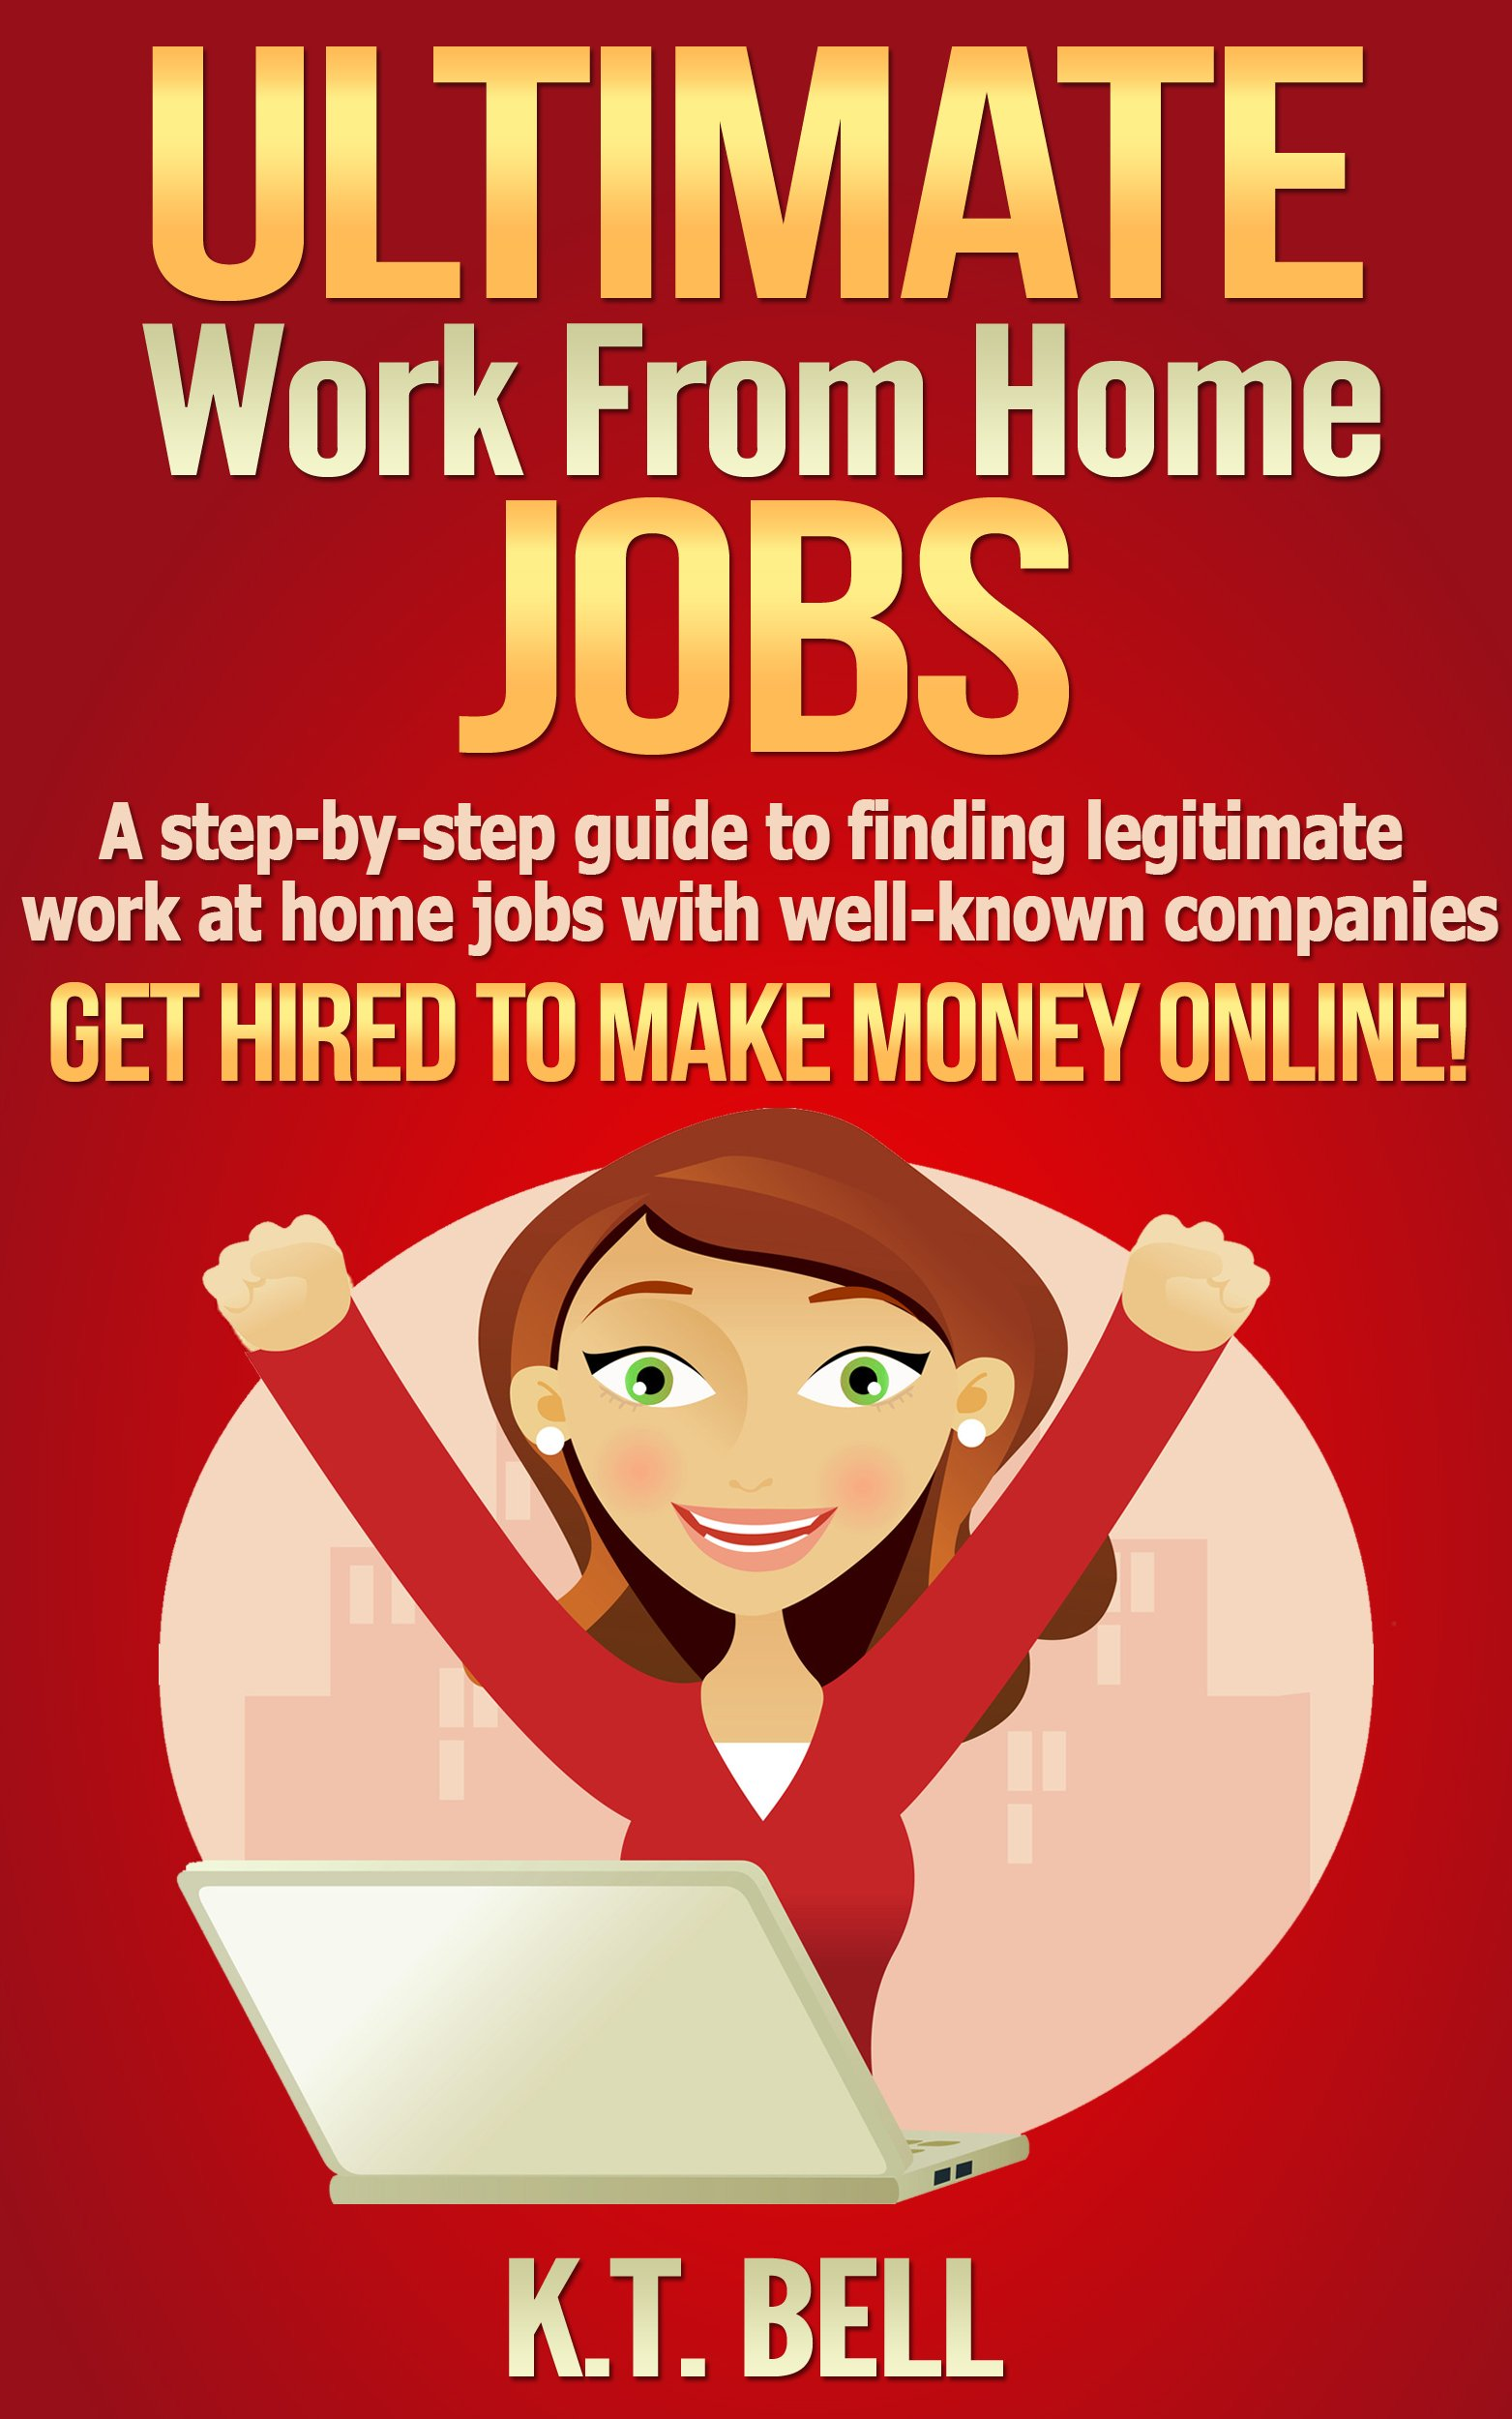 ULTIMATE Work from Home JOBS: A step-by-step guide to finding legitimate work at home jobs with well-known companies  GET HIRED TO MAKE MONEY ONLINE!